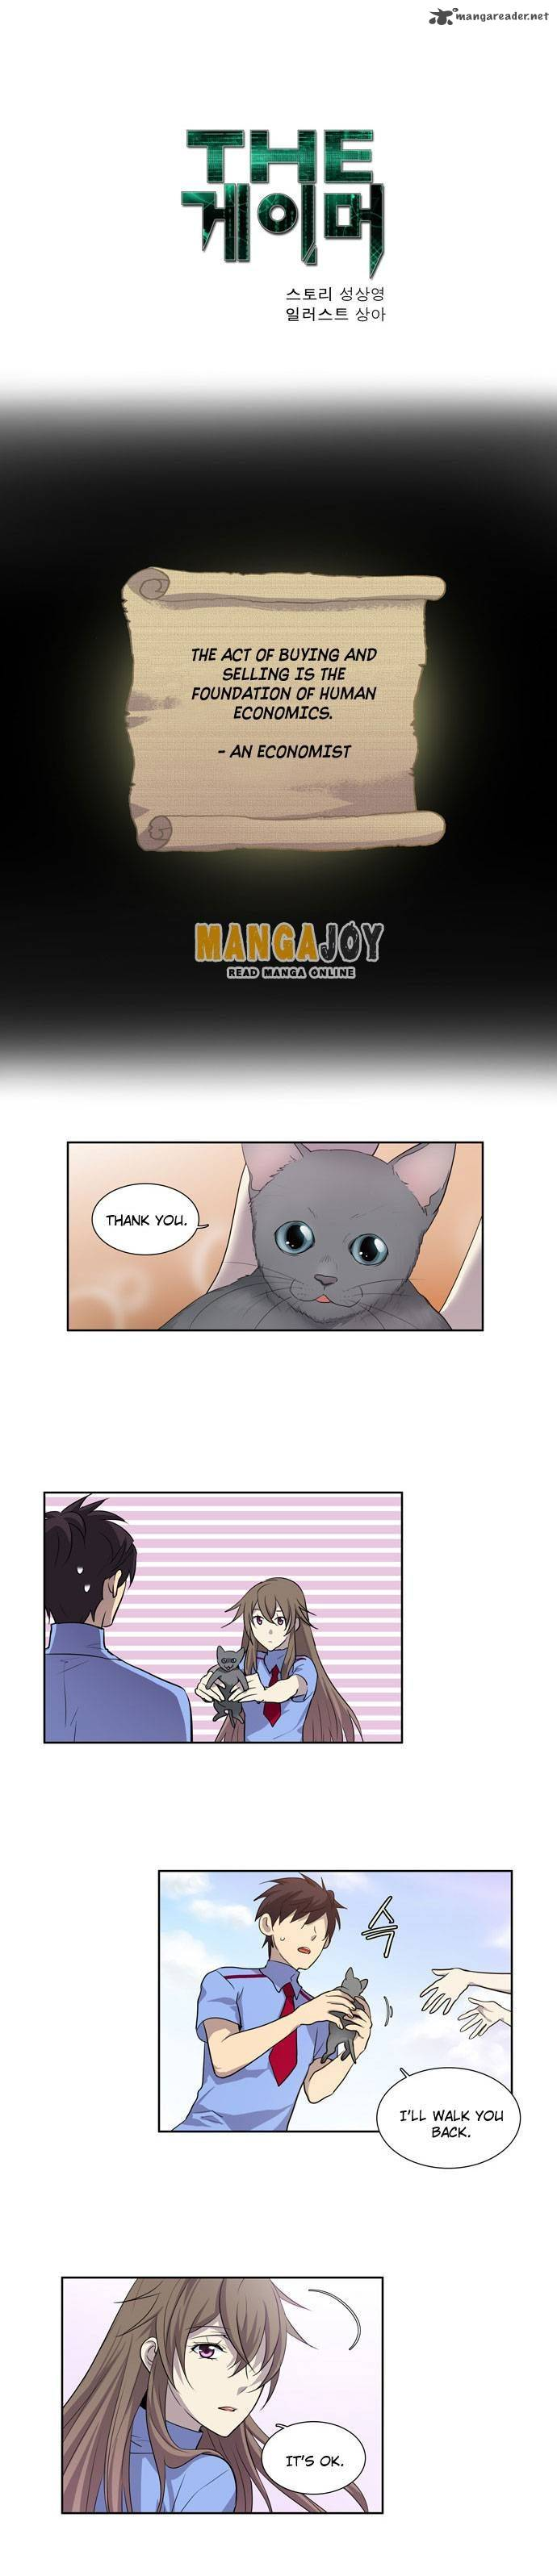 The Gamer Chapter 35 Page 1